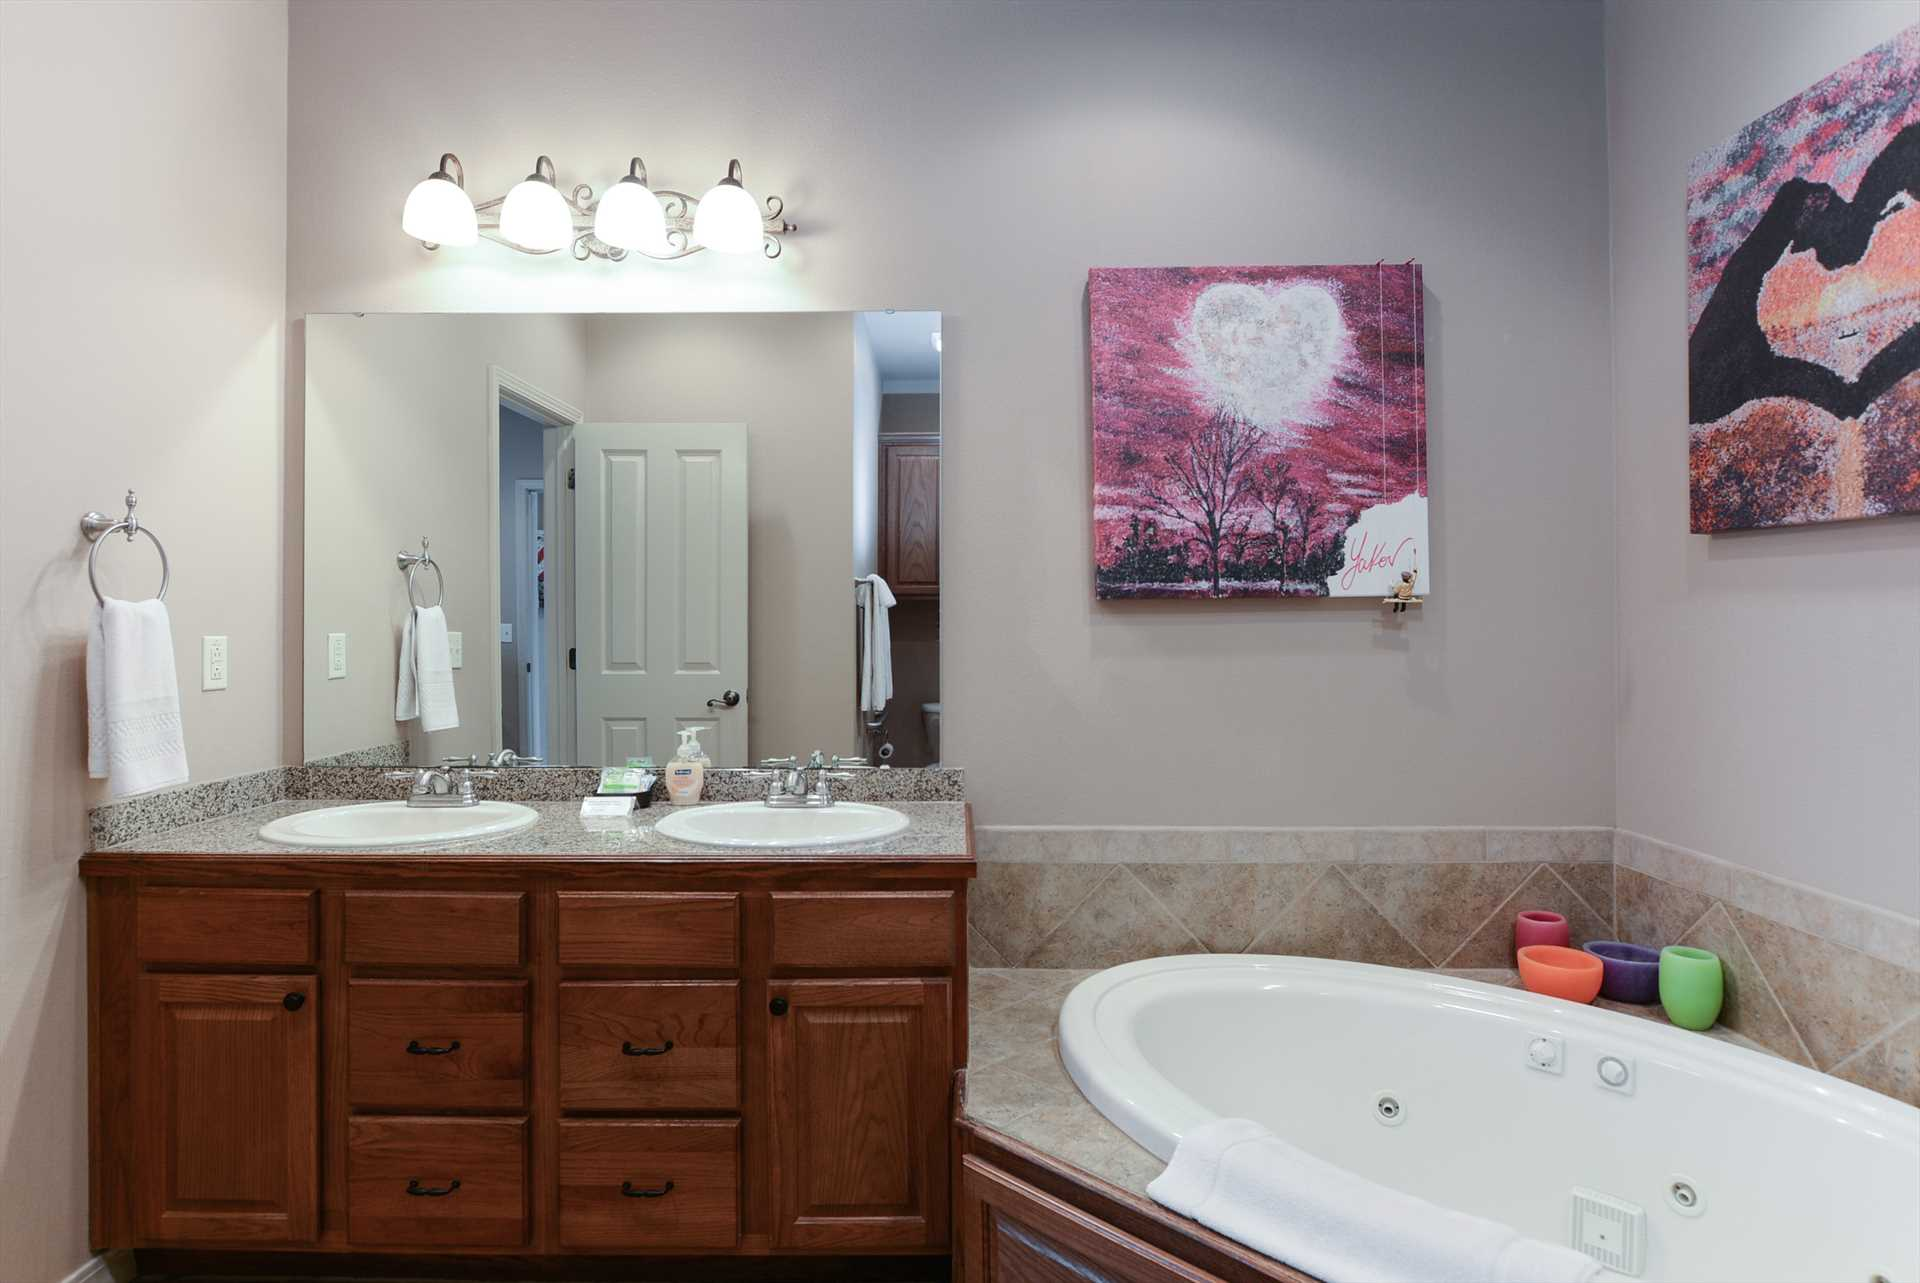 Large whirlpool bath ensures your stay is relaxing!